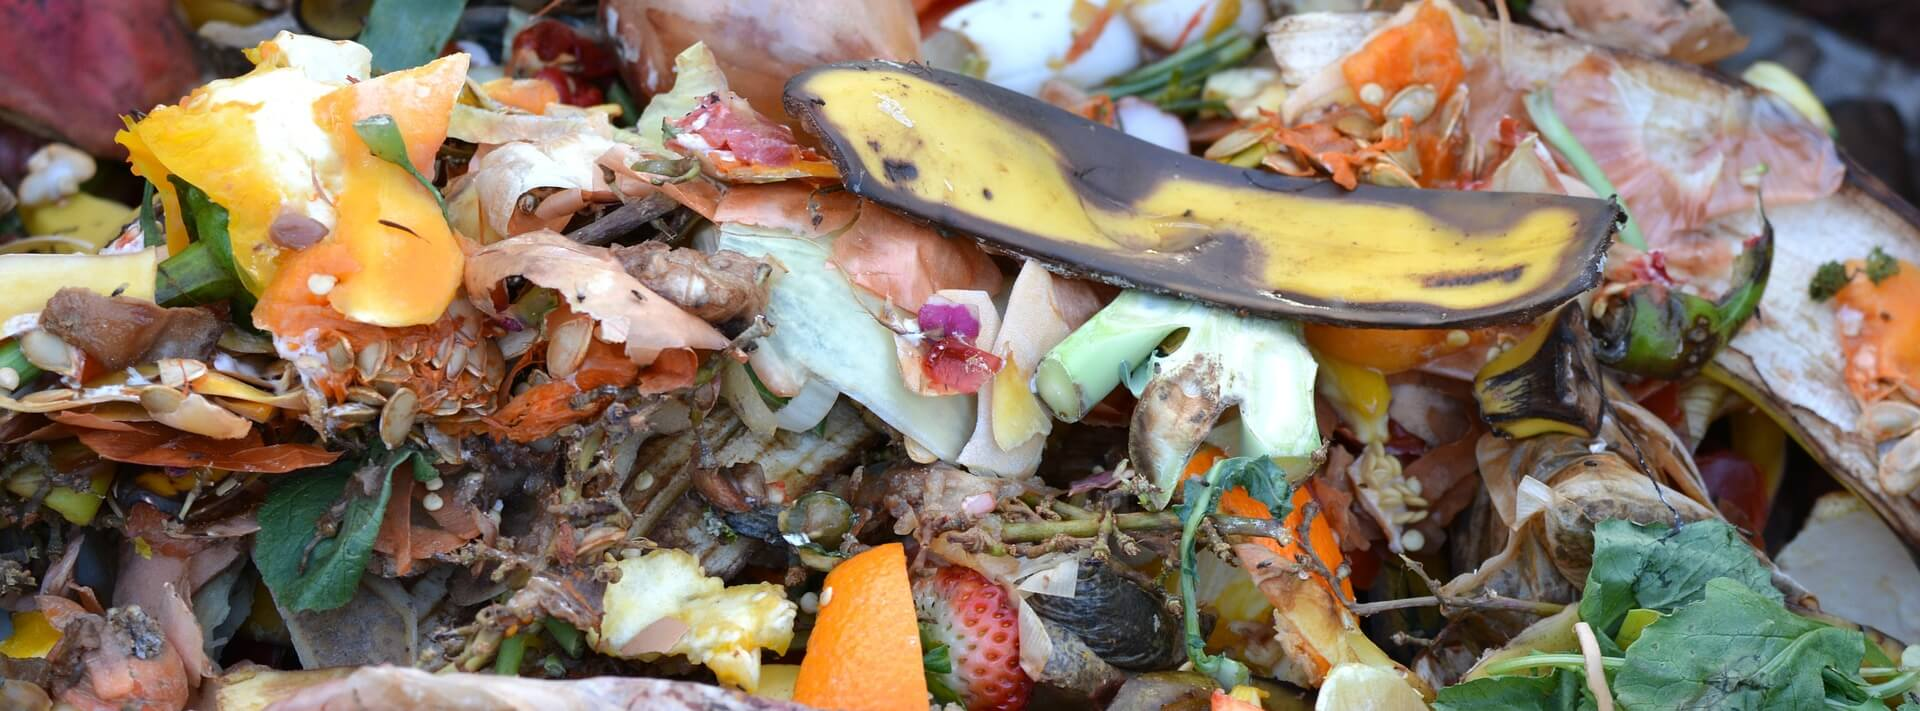 compost-hotels-food-waste